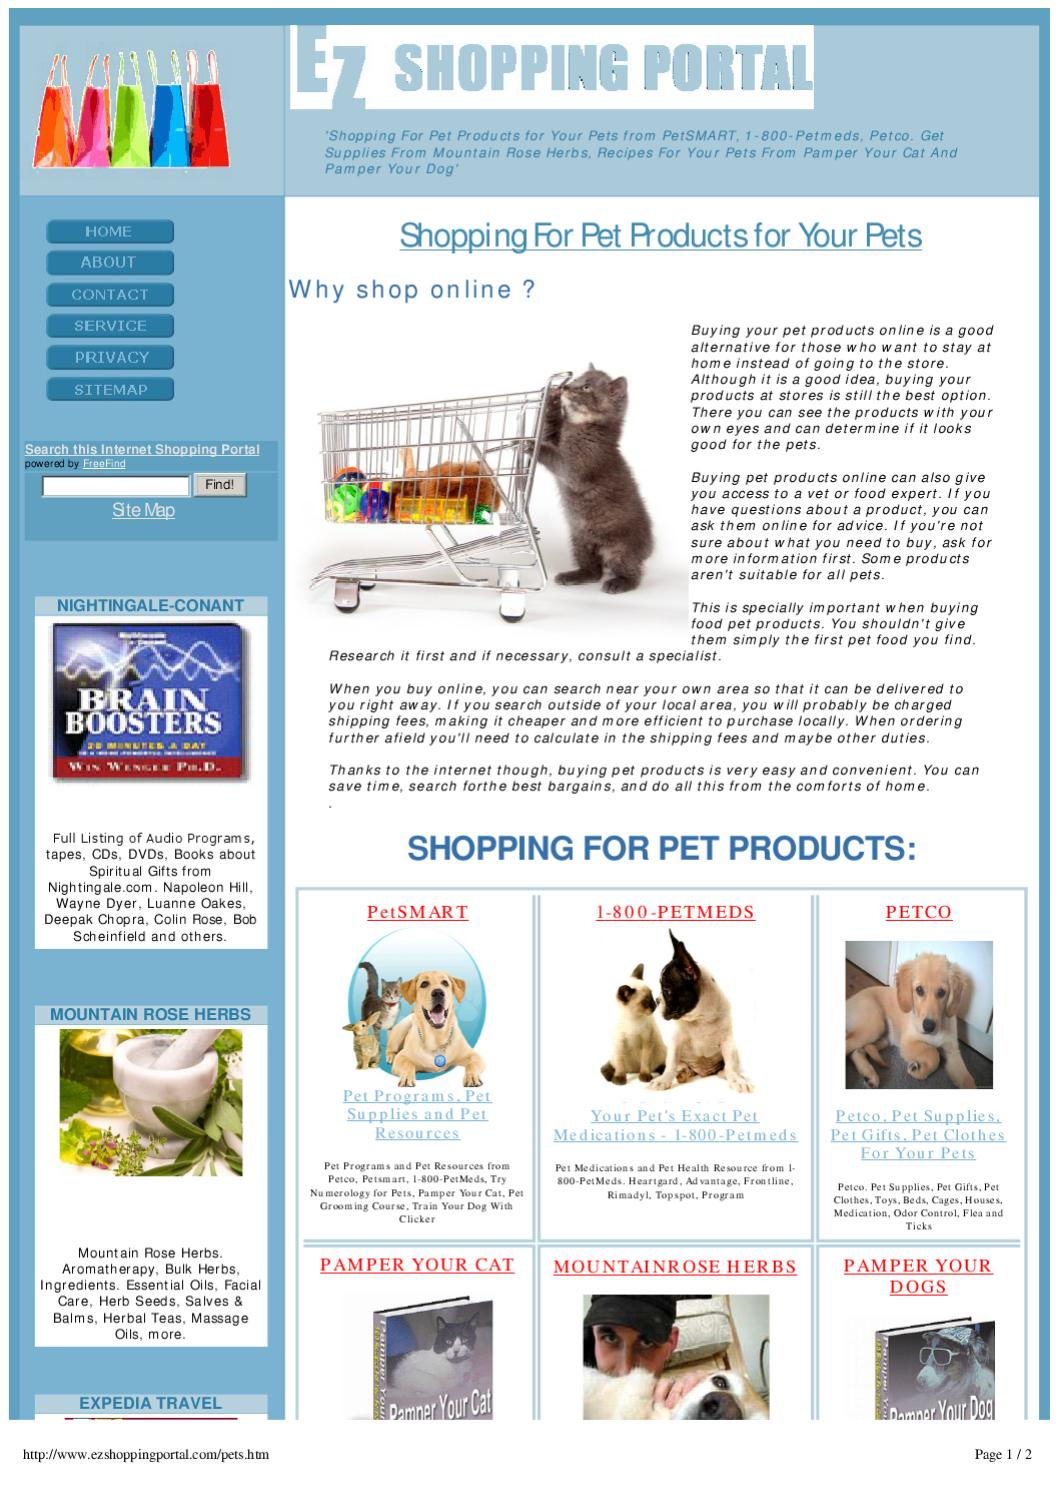 What pet products can you buy online? 45